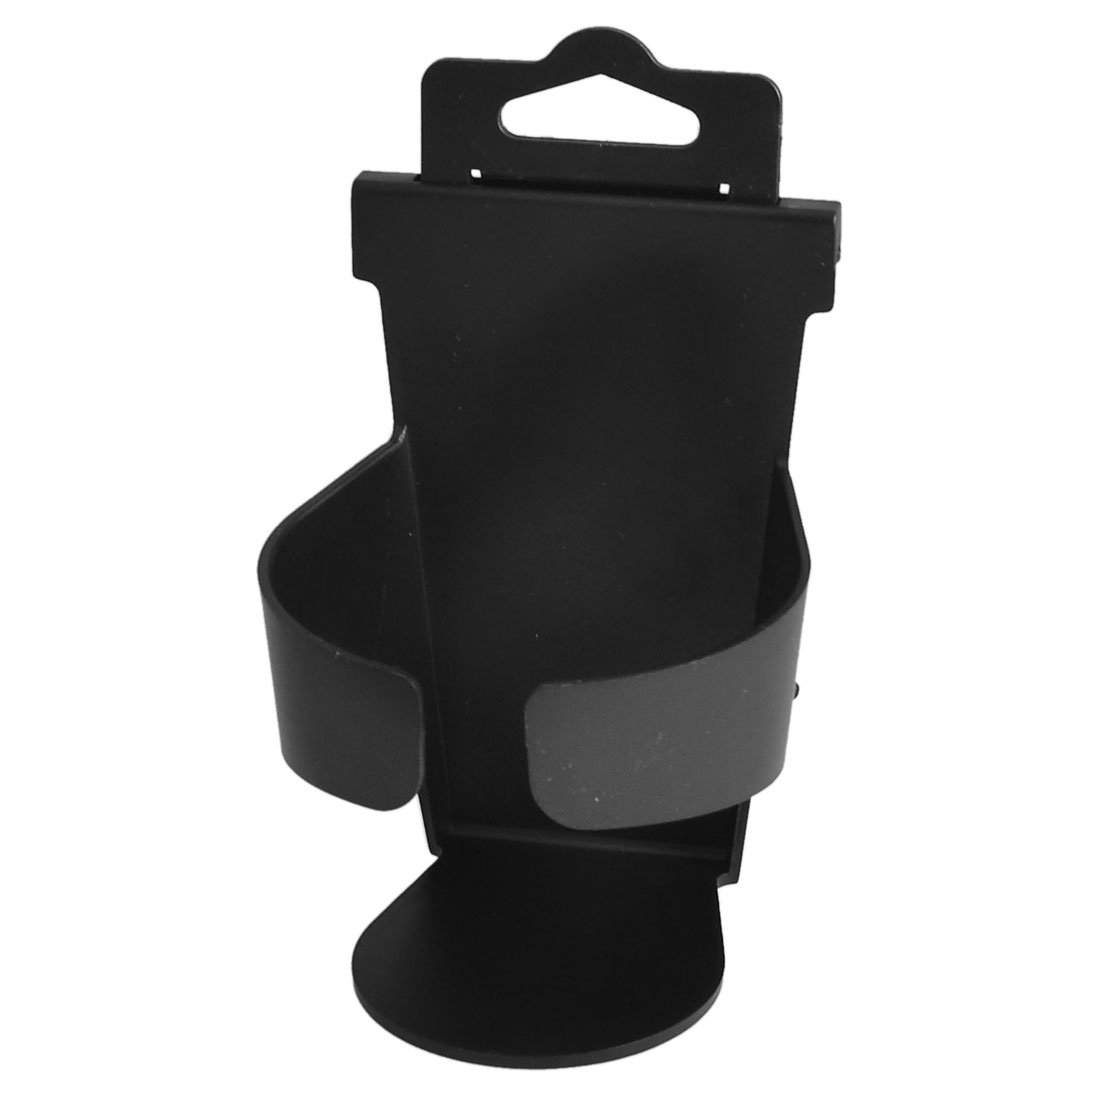 TOYL Vehicle Plastic Beverage Bottle Can Drink Cup Holder Stand